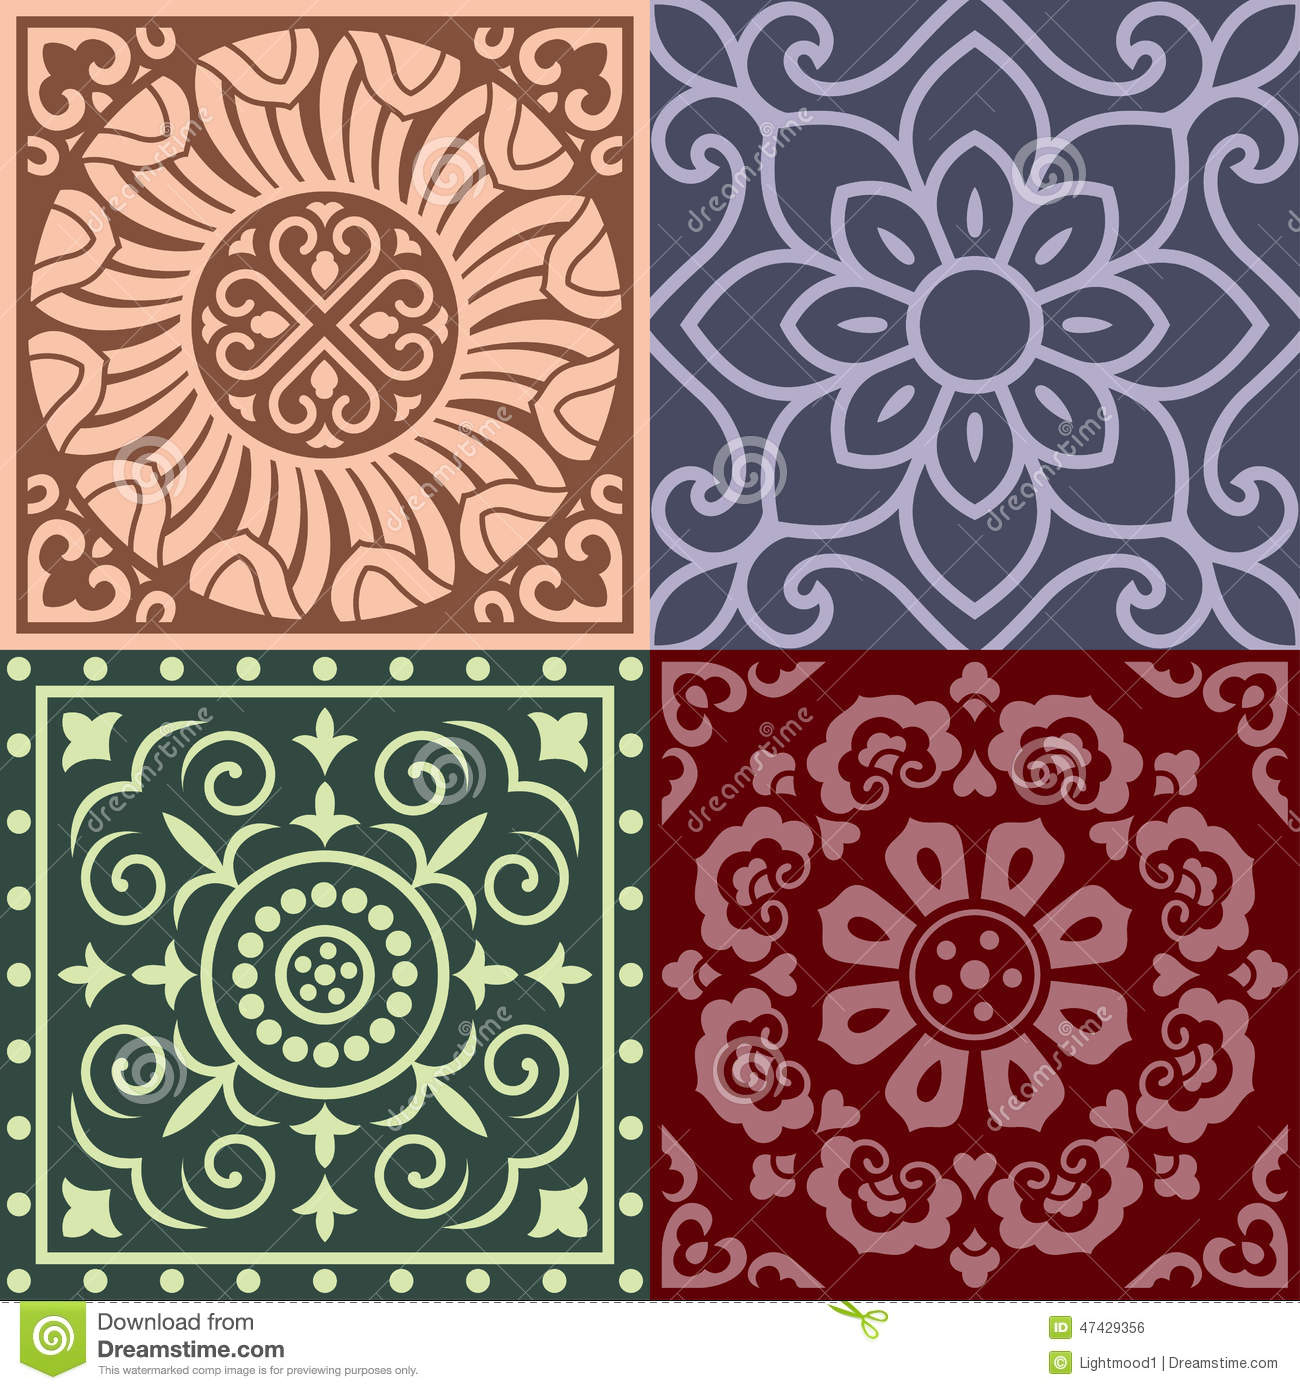 Traditional China Patterns patterns of china traditional style stock vector - image: 47429356